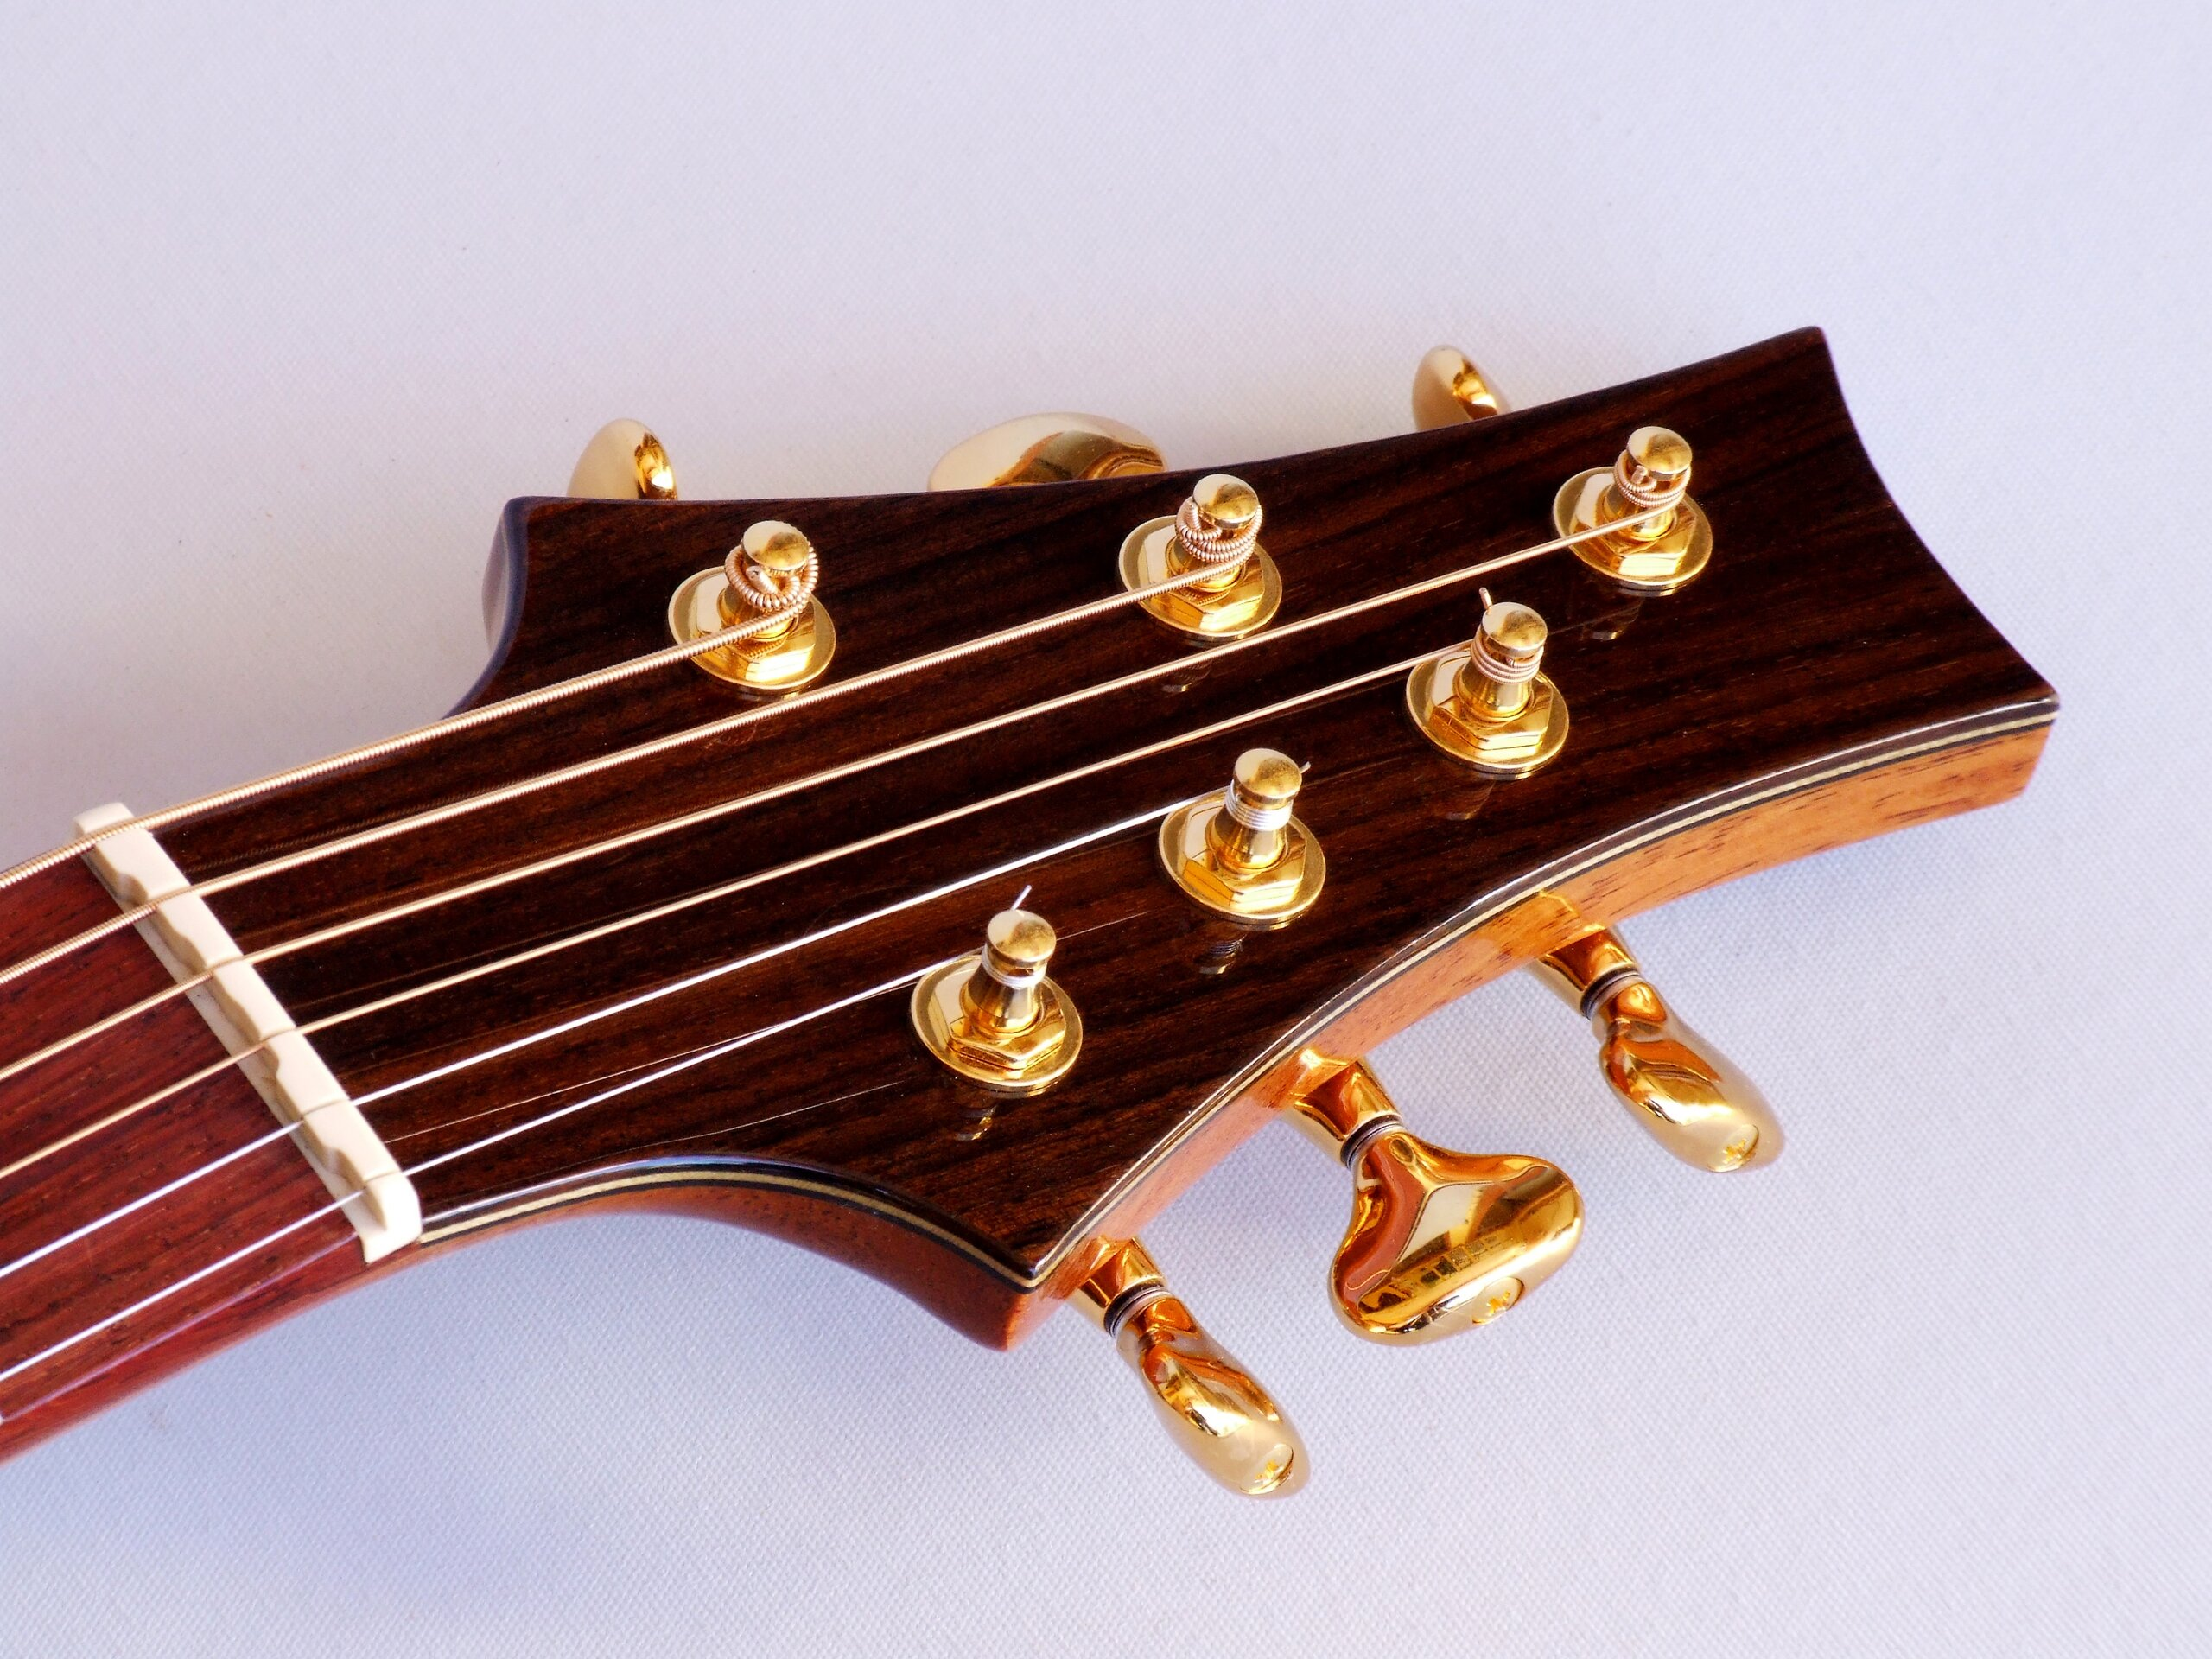 Straight pull headstock, compensated nut, Gotoh 510 tuners